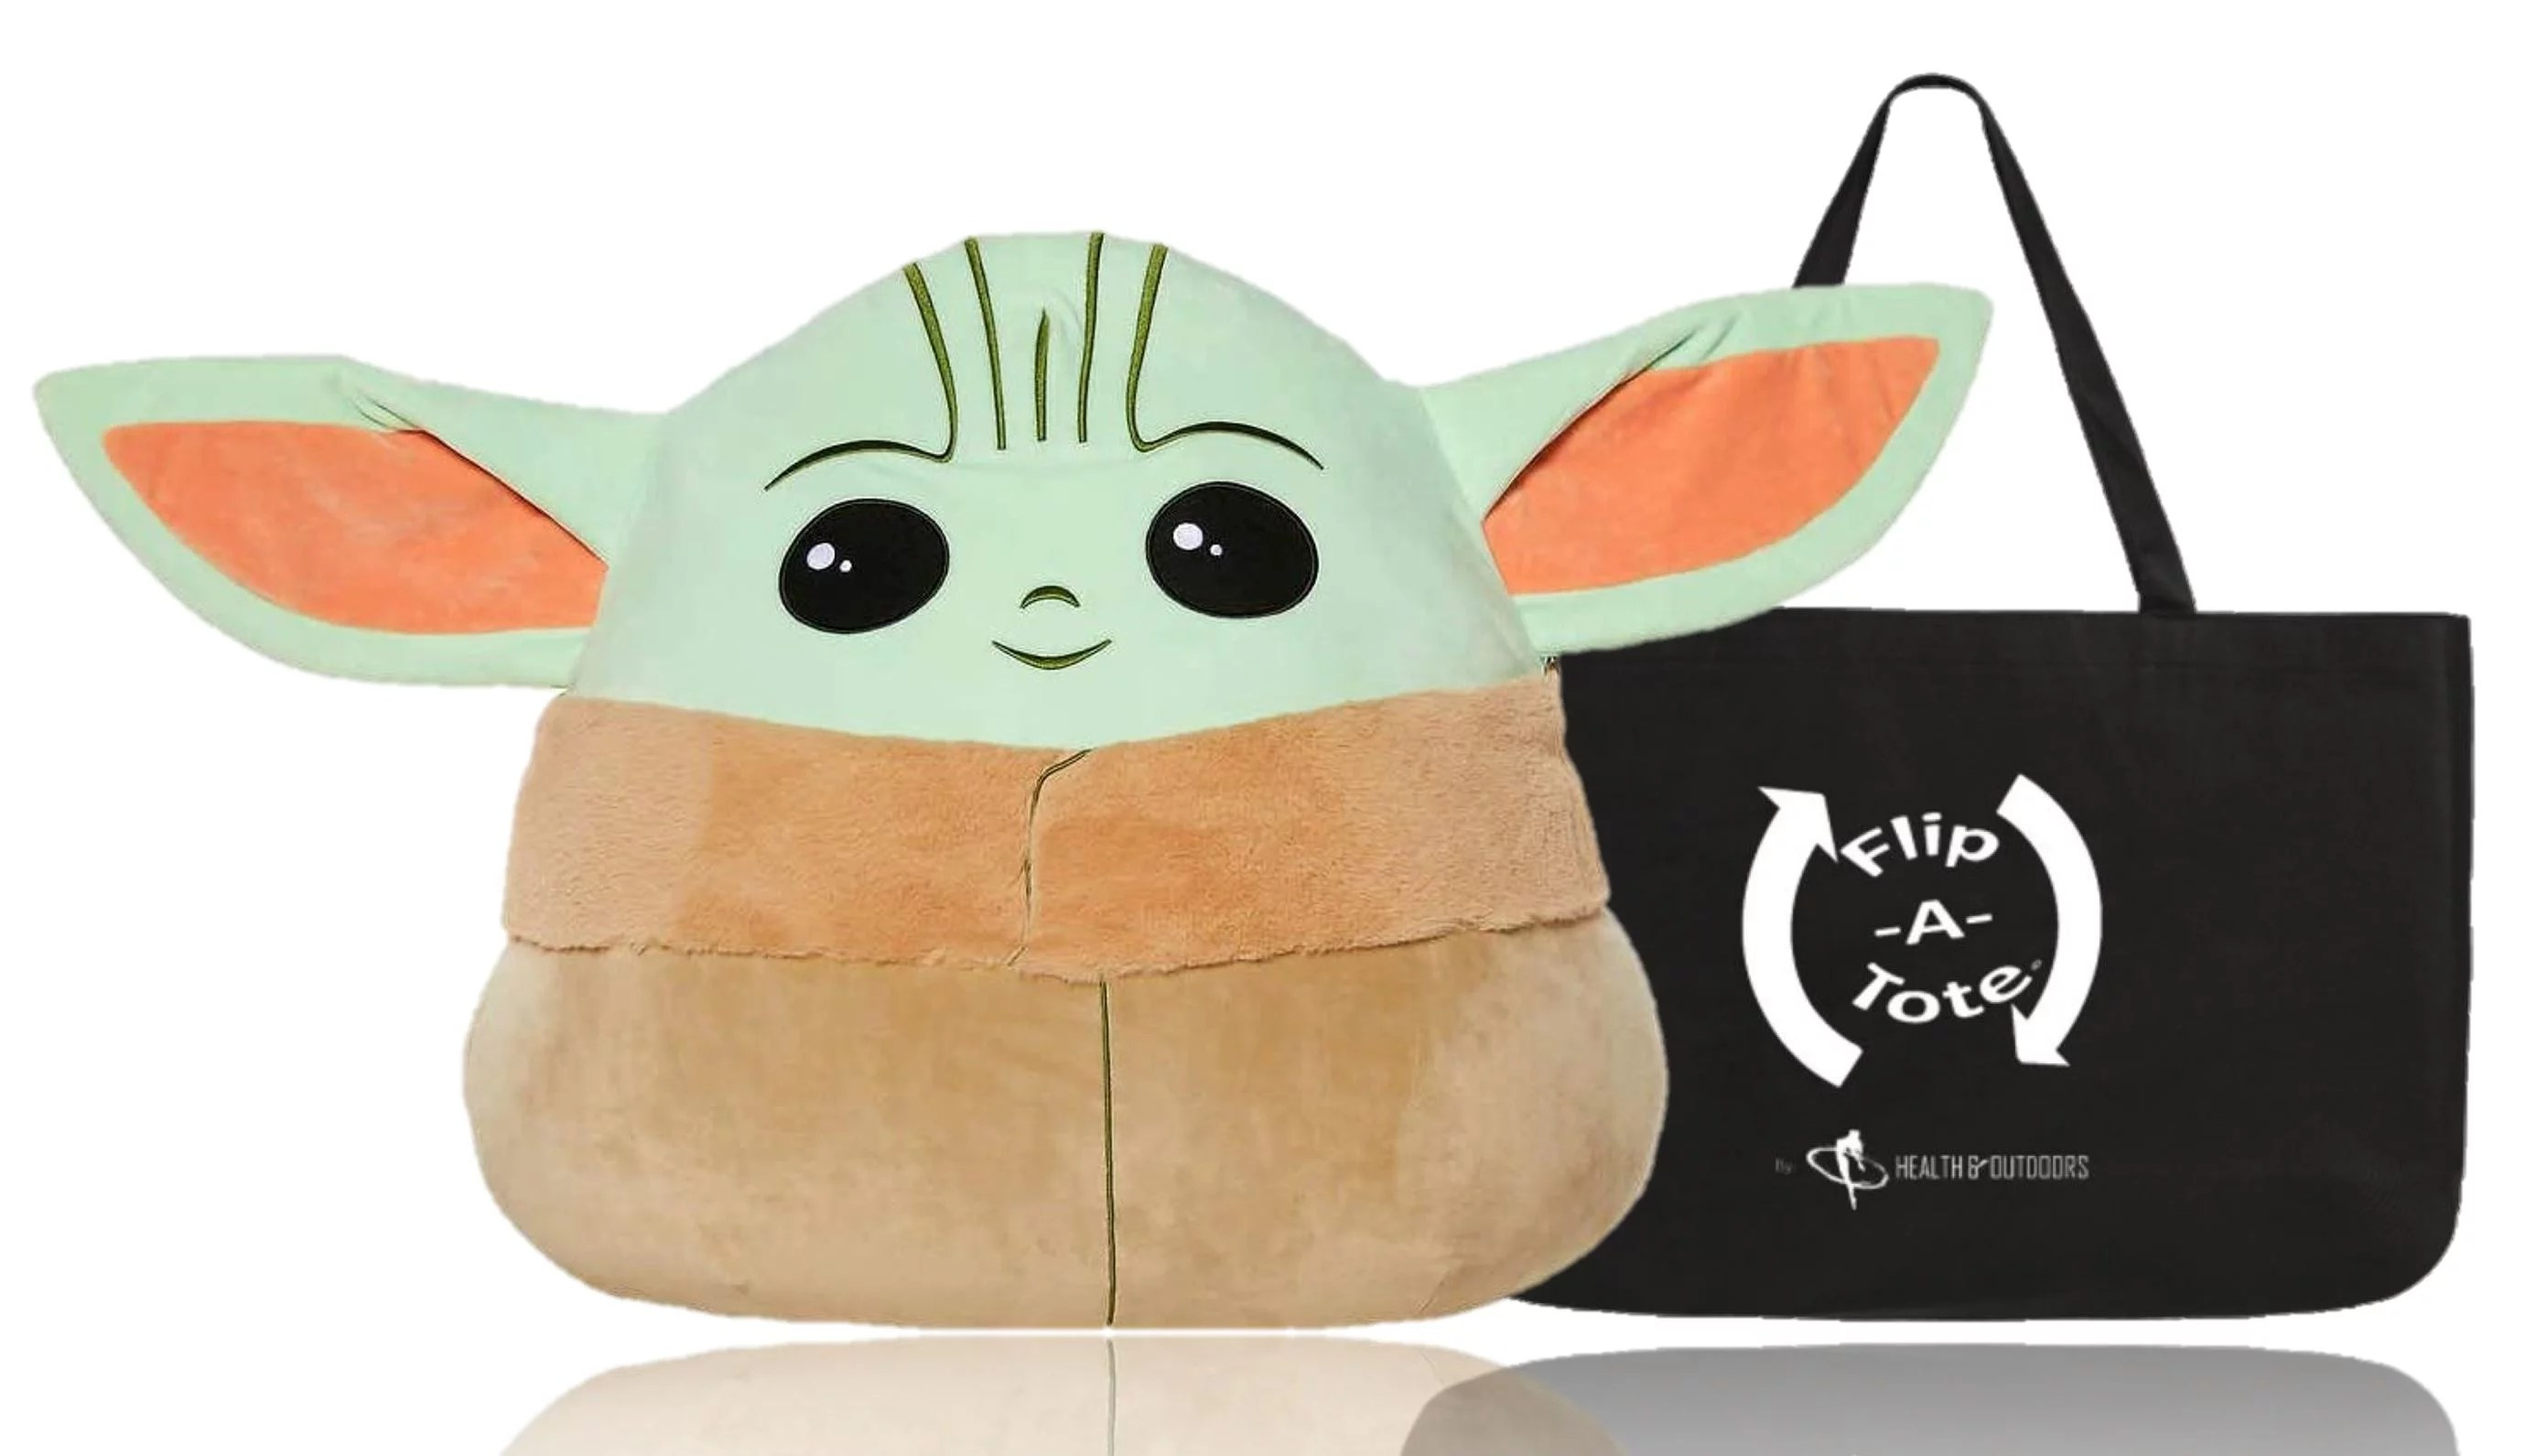 squishmallow baby yoda the child large 20 inch stuffed plush pillow with exclusive flip a tote walmart com